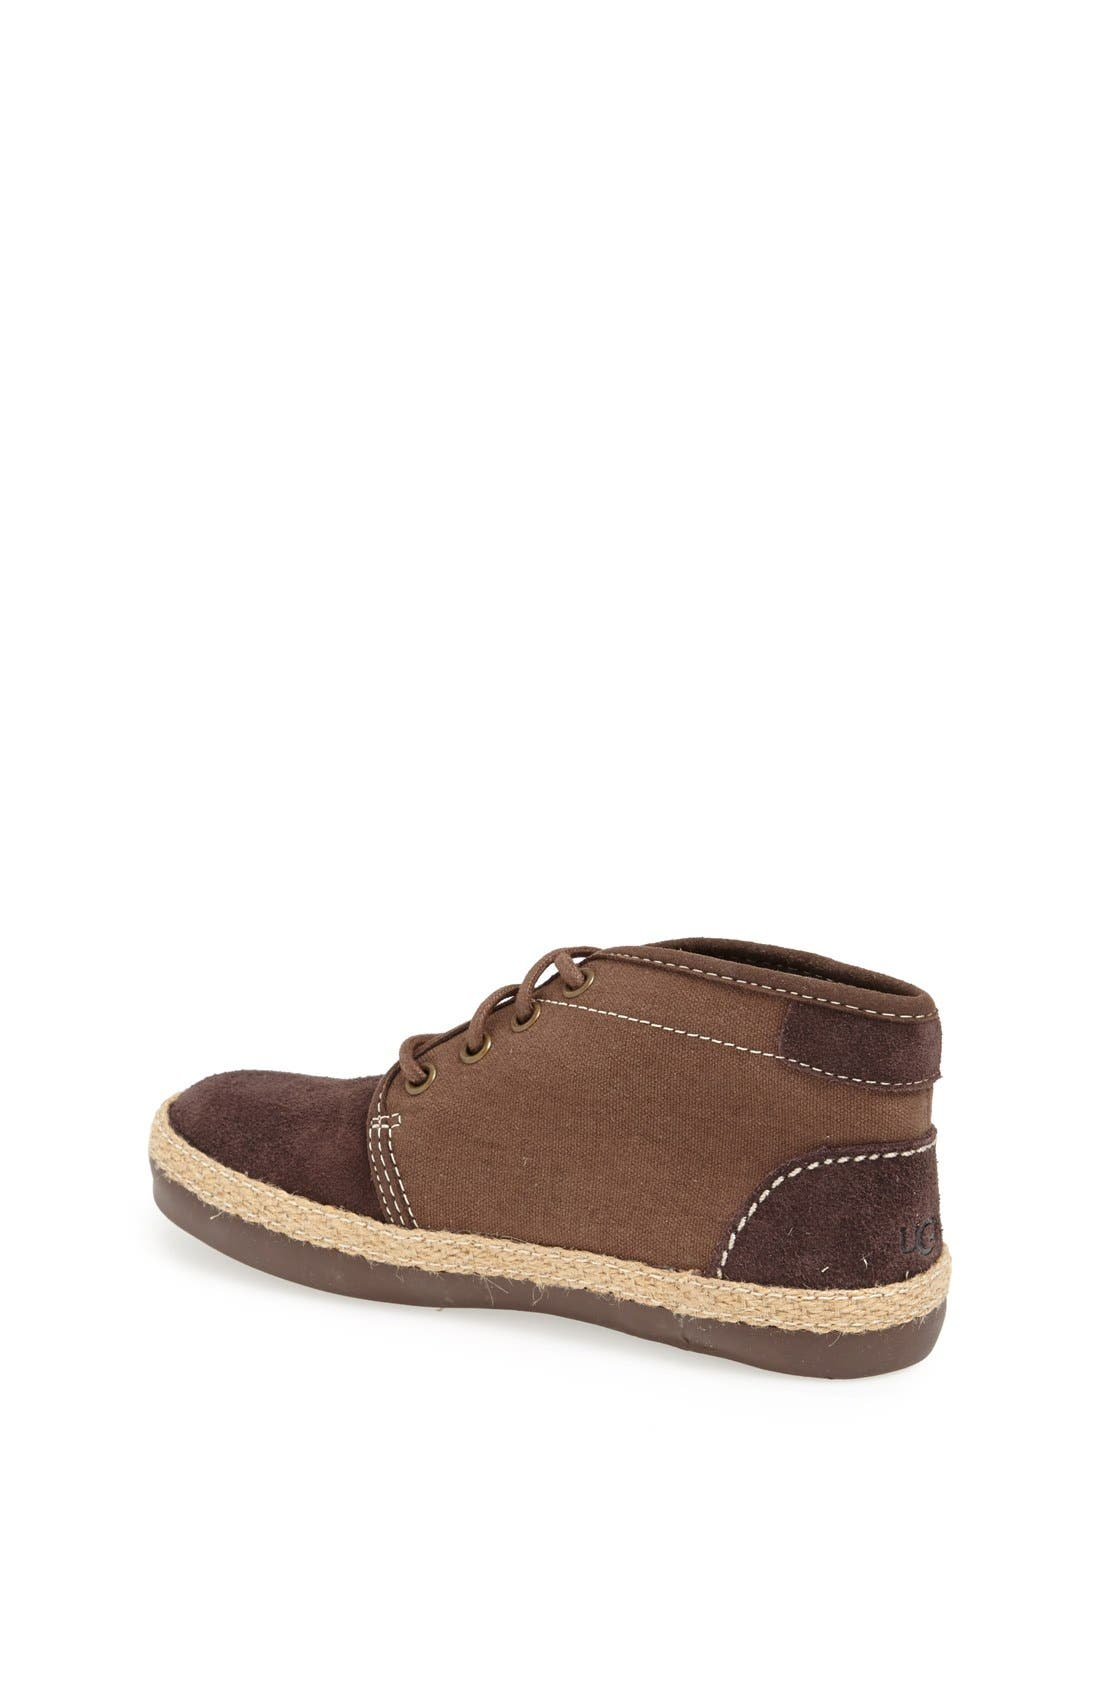 Alternate Image 2  - UGG® Australia 'Casper' Chukka Boot (Toddler, Little Kid & Big Kid)